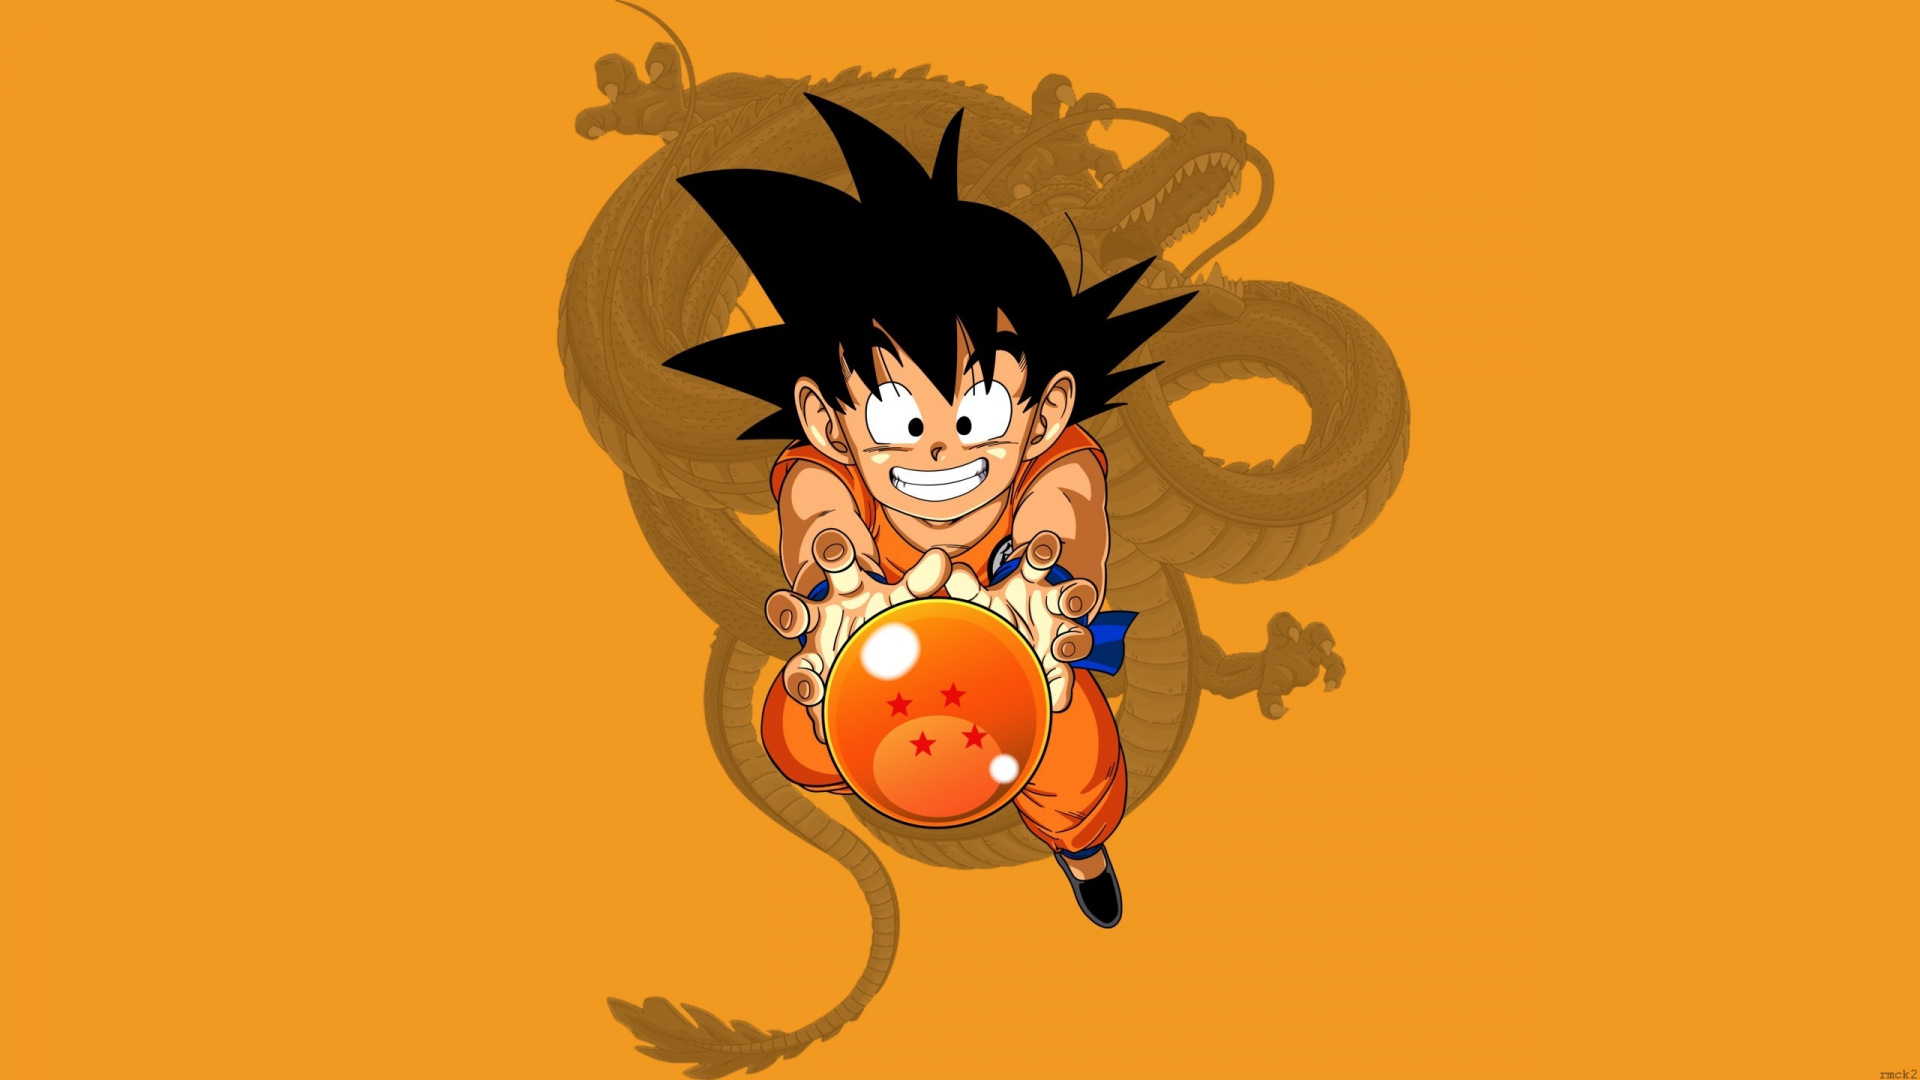 kid goku 1920x1080 minimalwallpaper